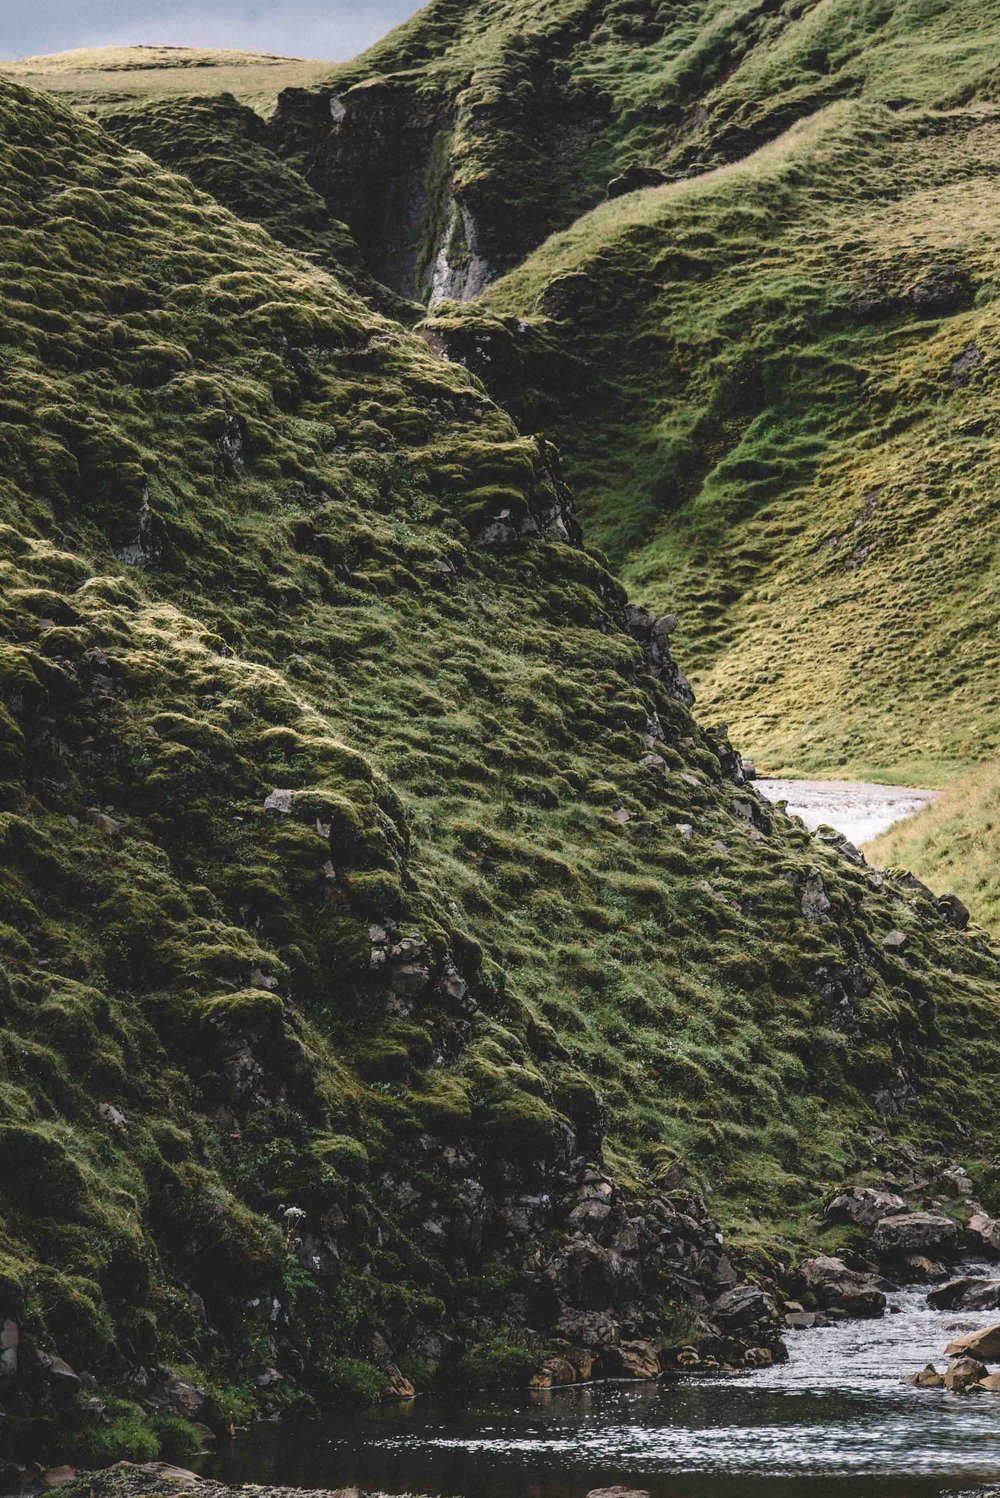 scouting-iceland-58.jpg